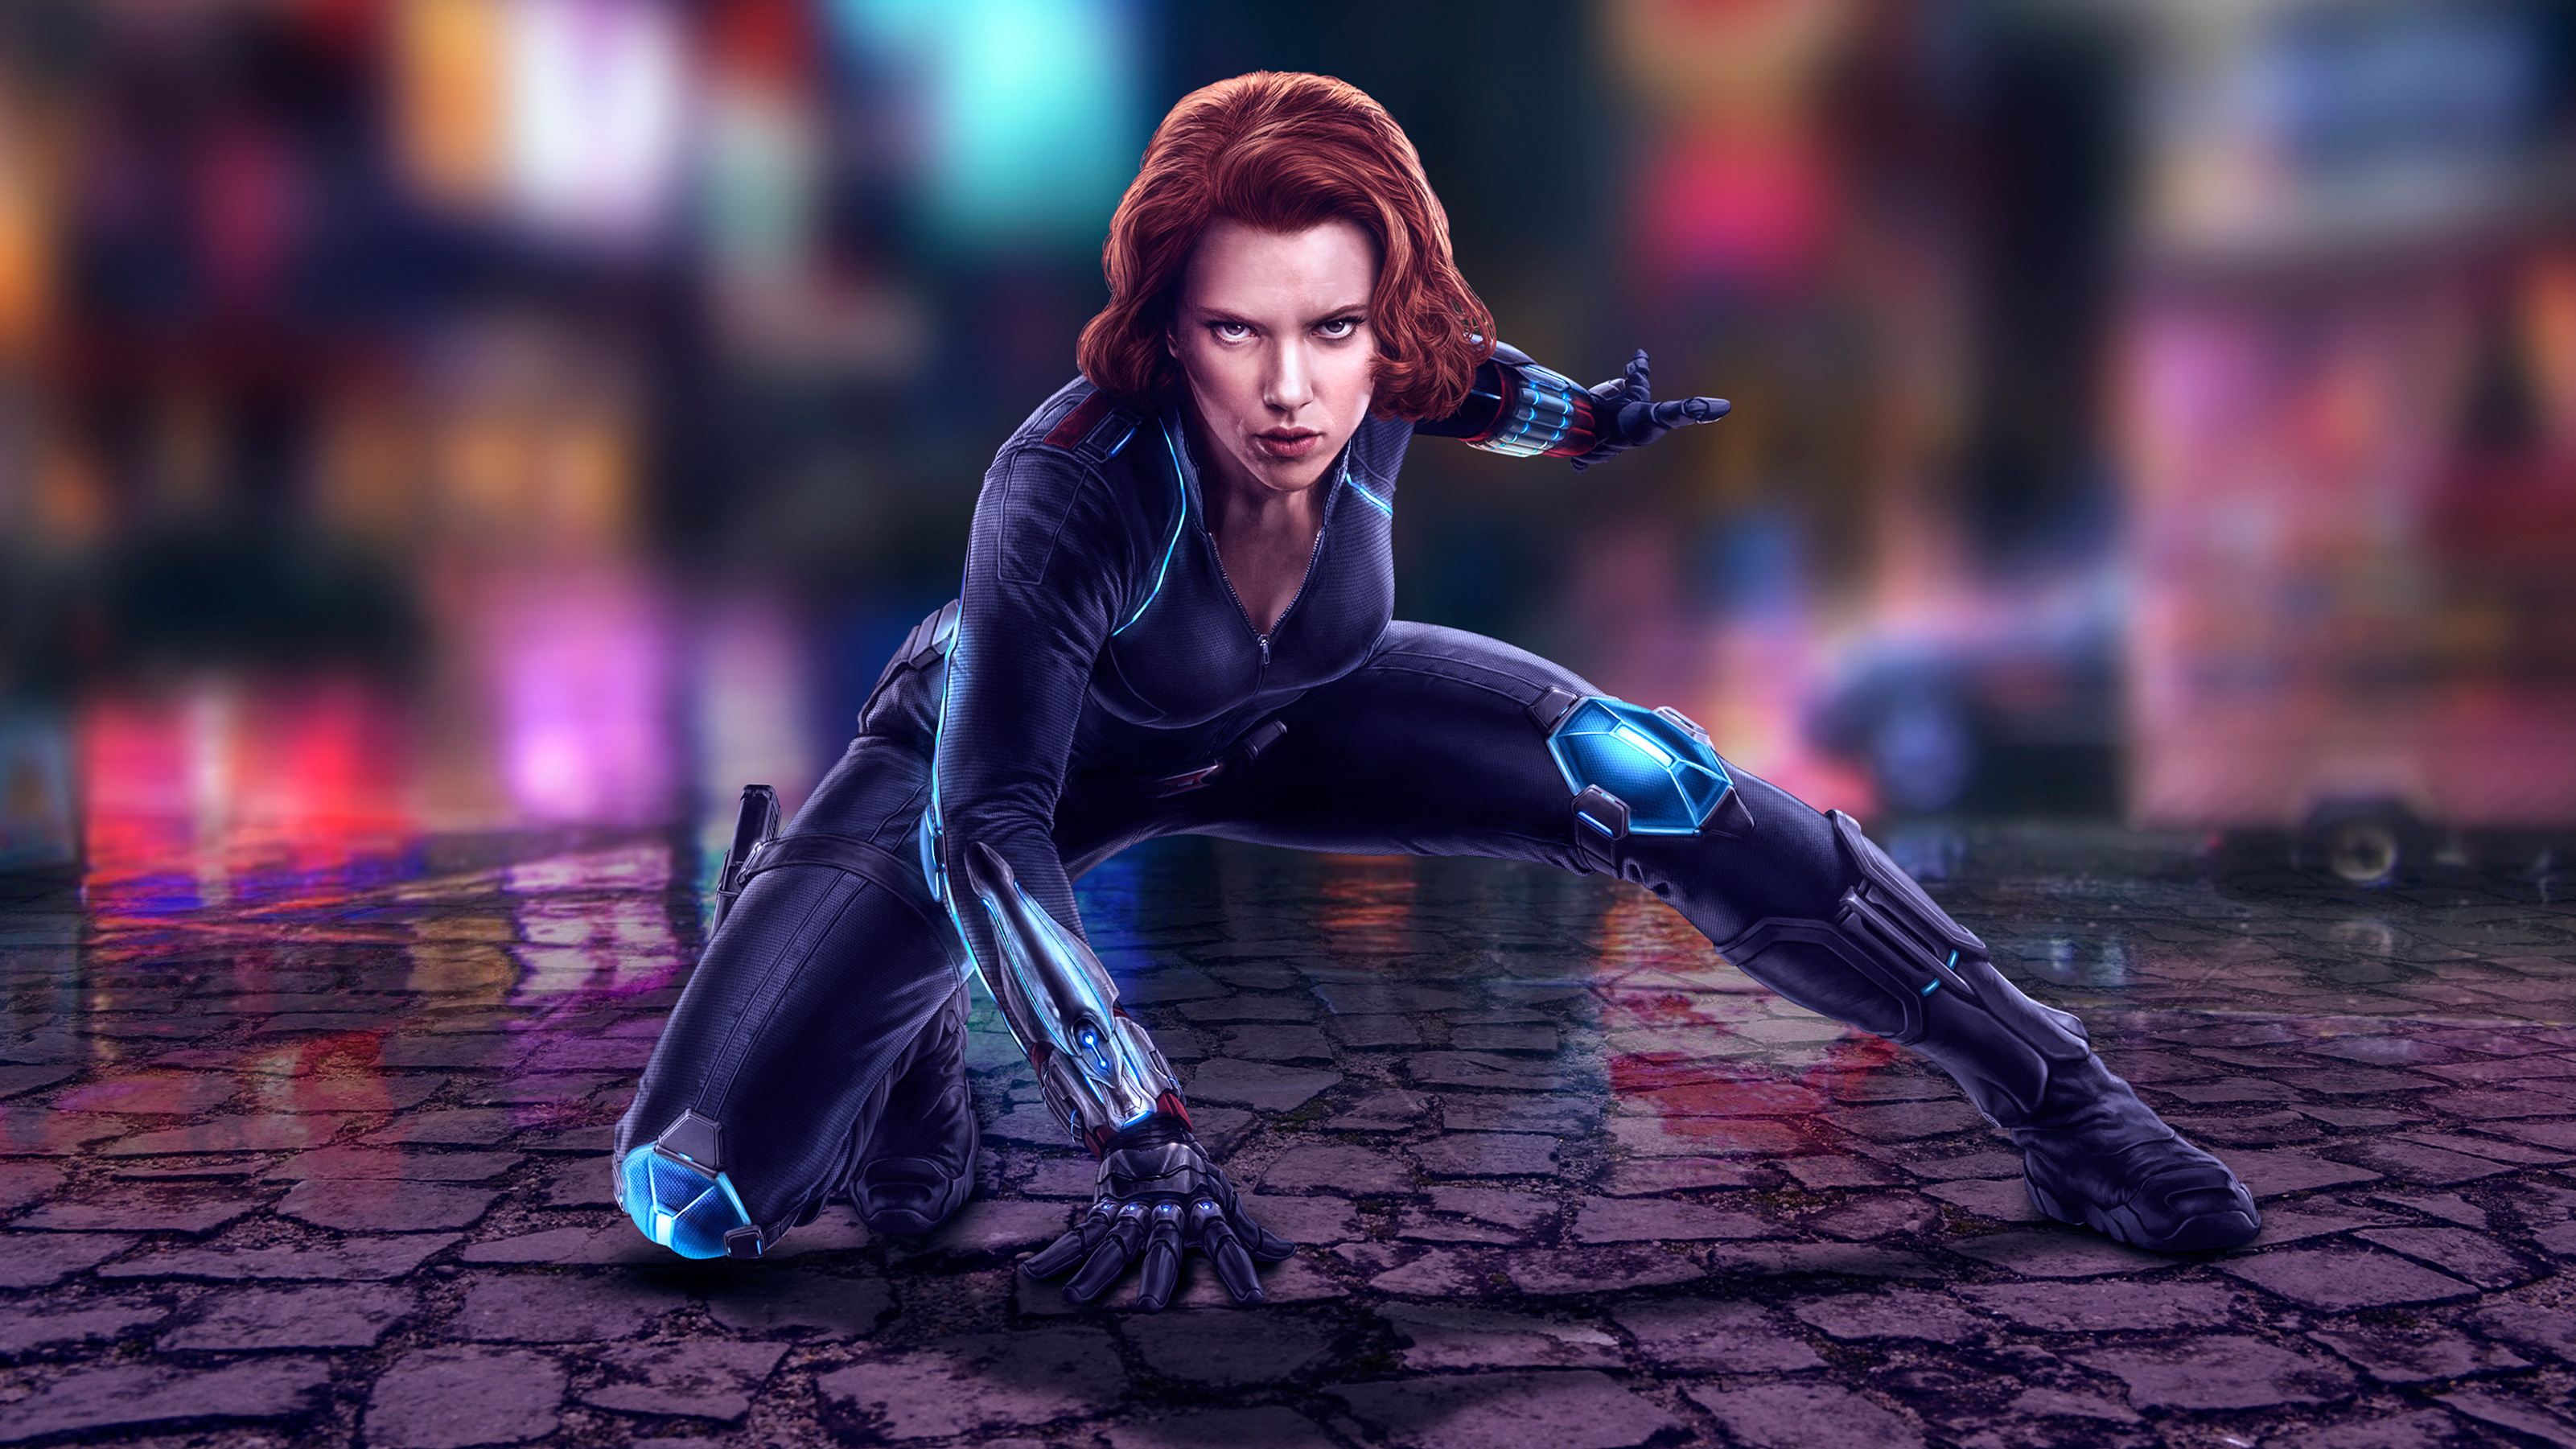 Black Widow 4k Hd Superheroes 4k Wallpapers Images Backgrounds Photos And Pictures